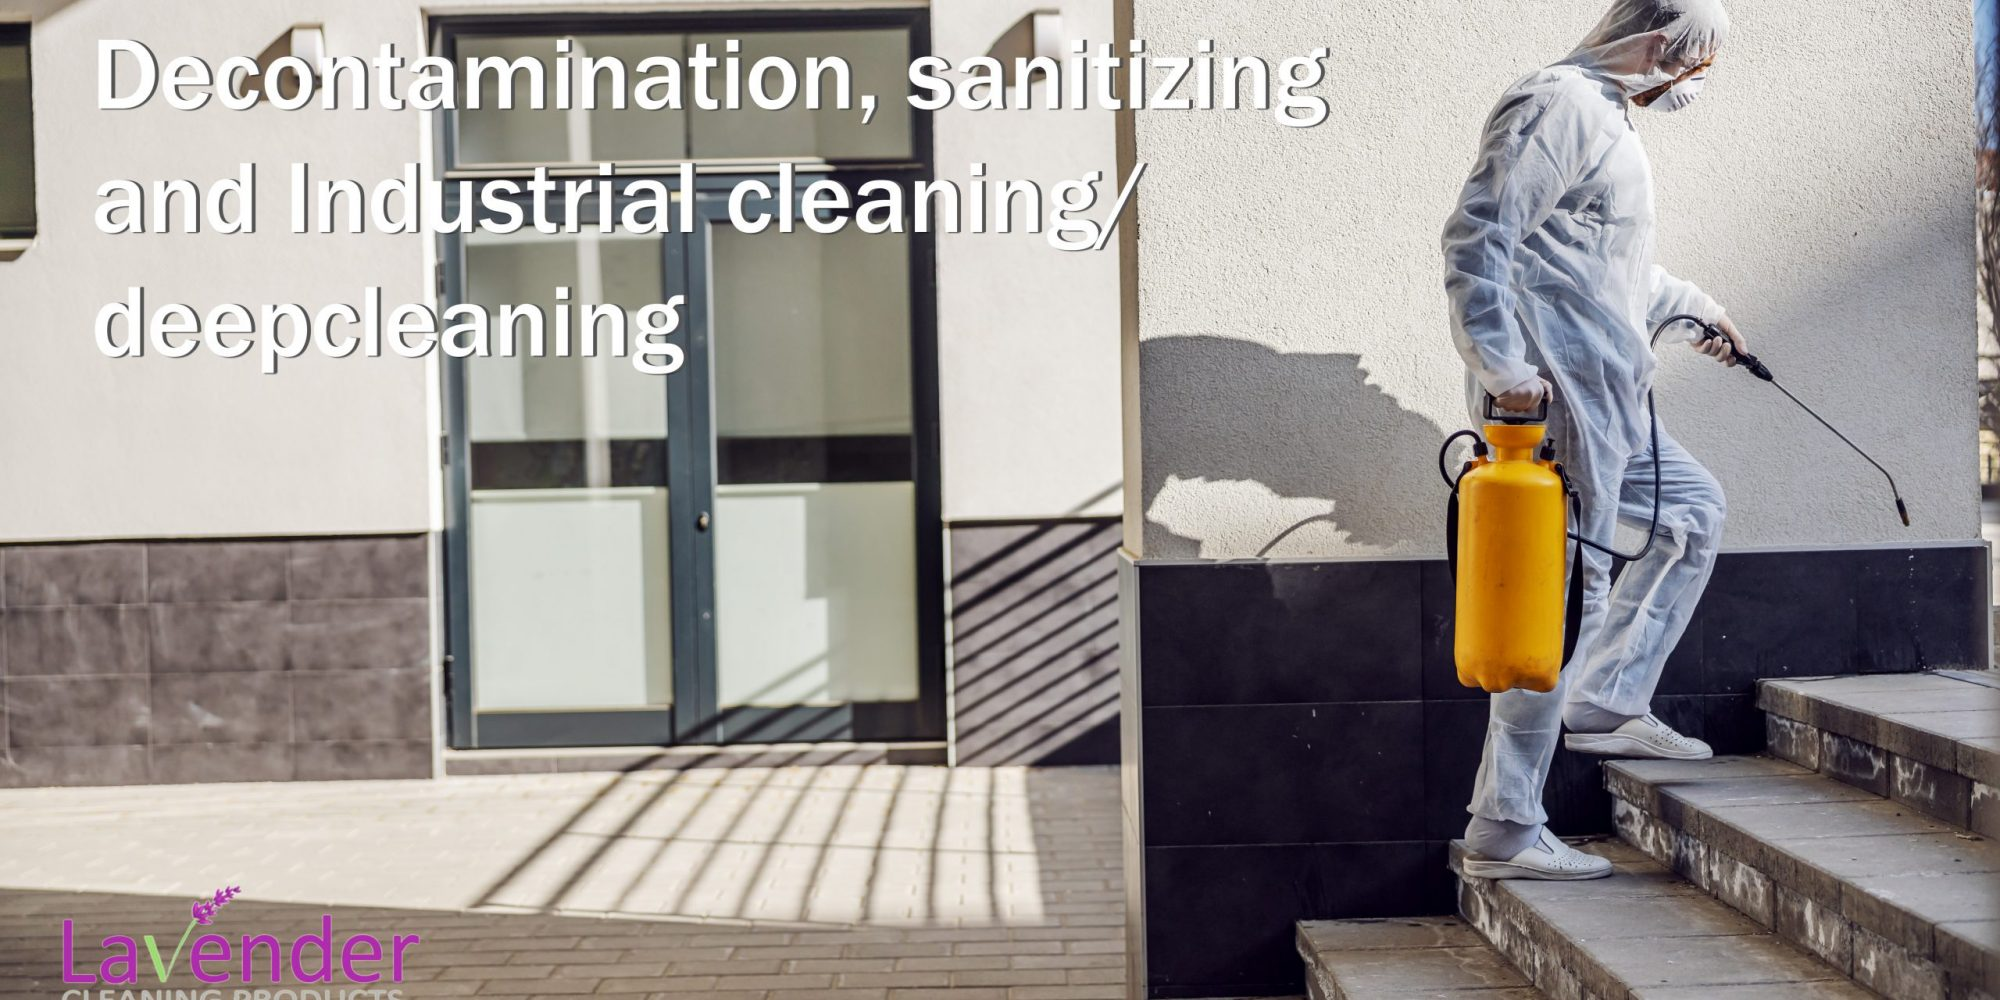 Cleaning and Disinfection outside around buildings, the coronavirus epidemic. Professional teams for disinfection efforts. Infection prevention and control of epidemic. Protective suit and mask.